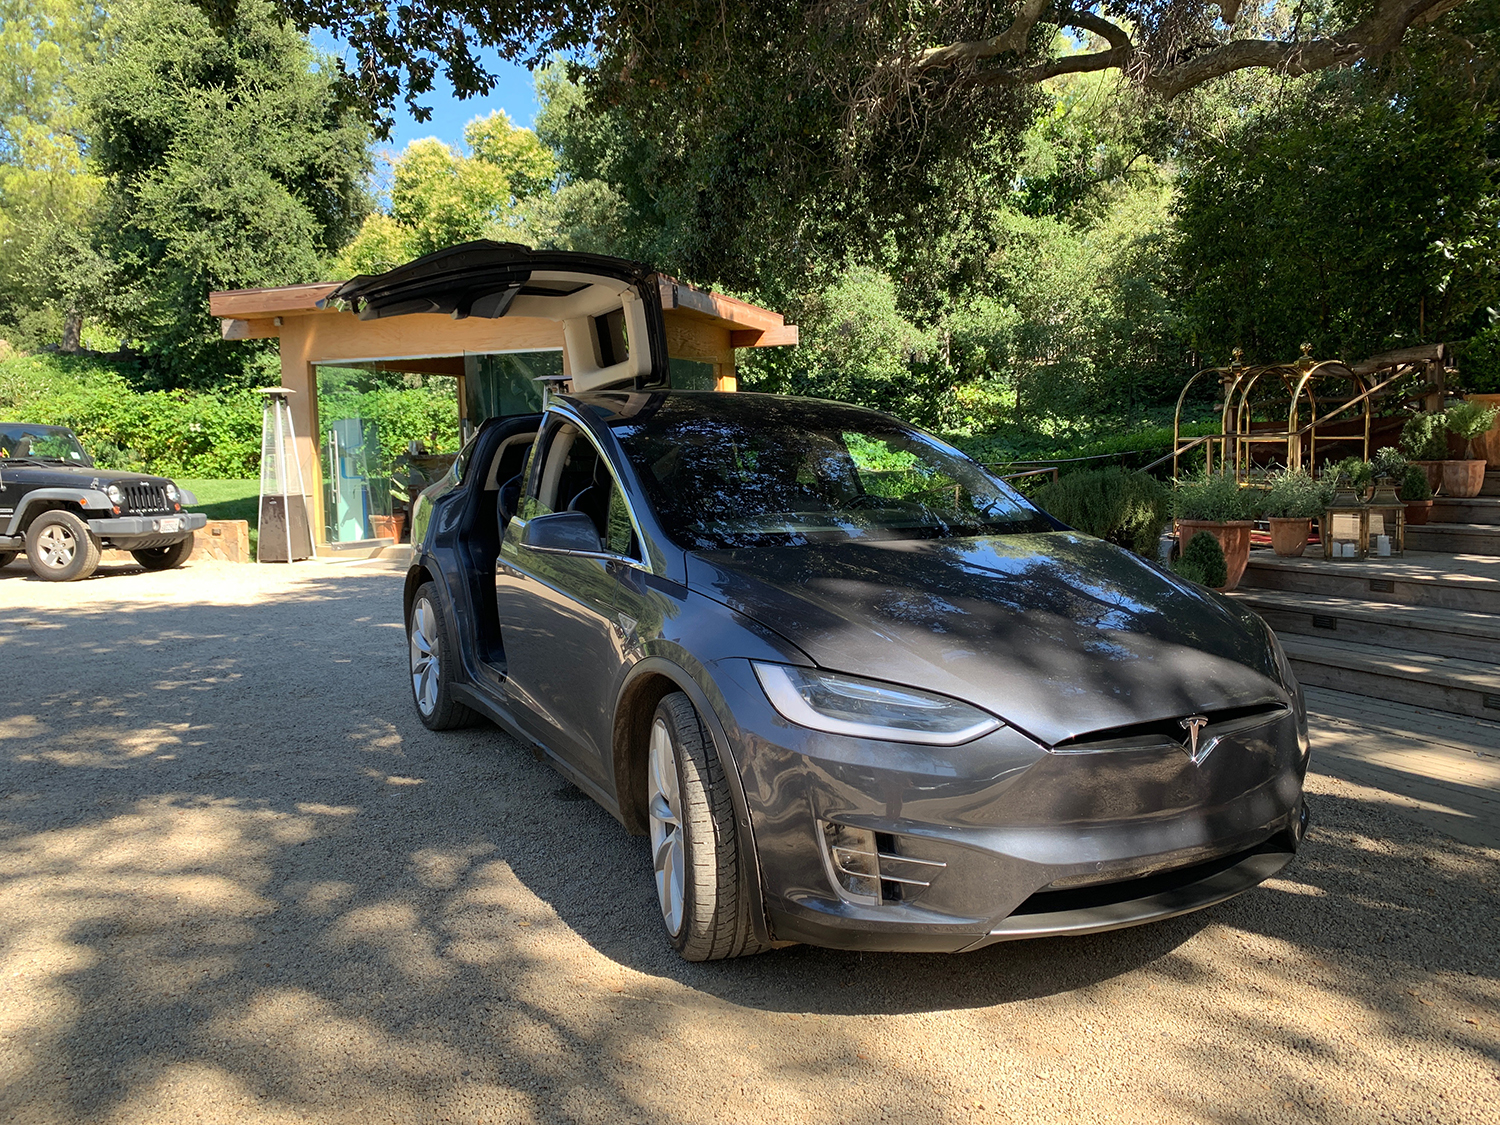 A complimentary Tesla shuttle is available for guests to and from the Beach Club.